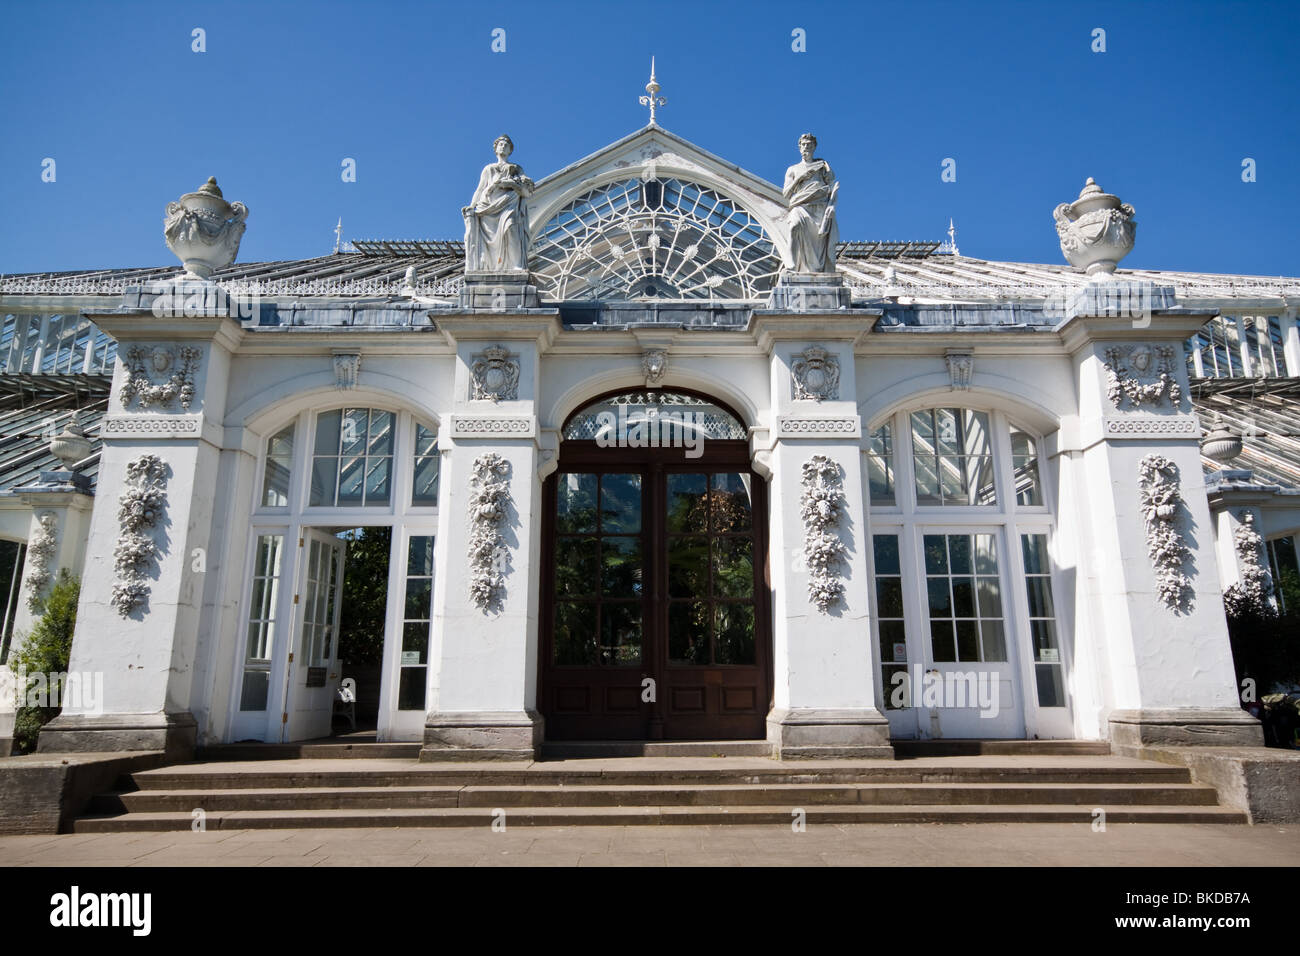 Entrance to the Temperate House Kew Gardens - Stock Image